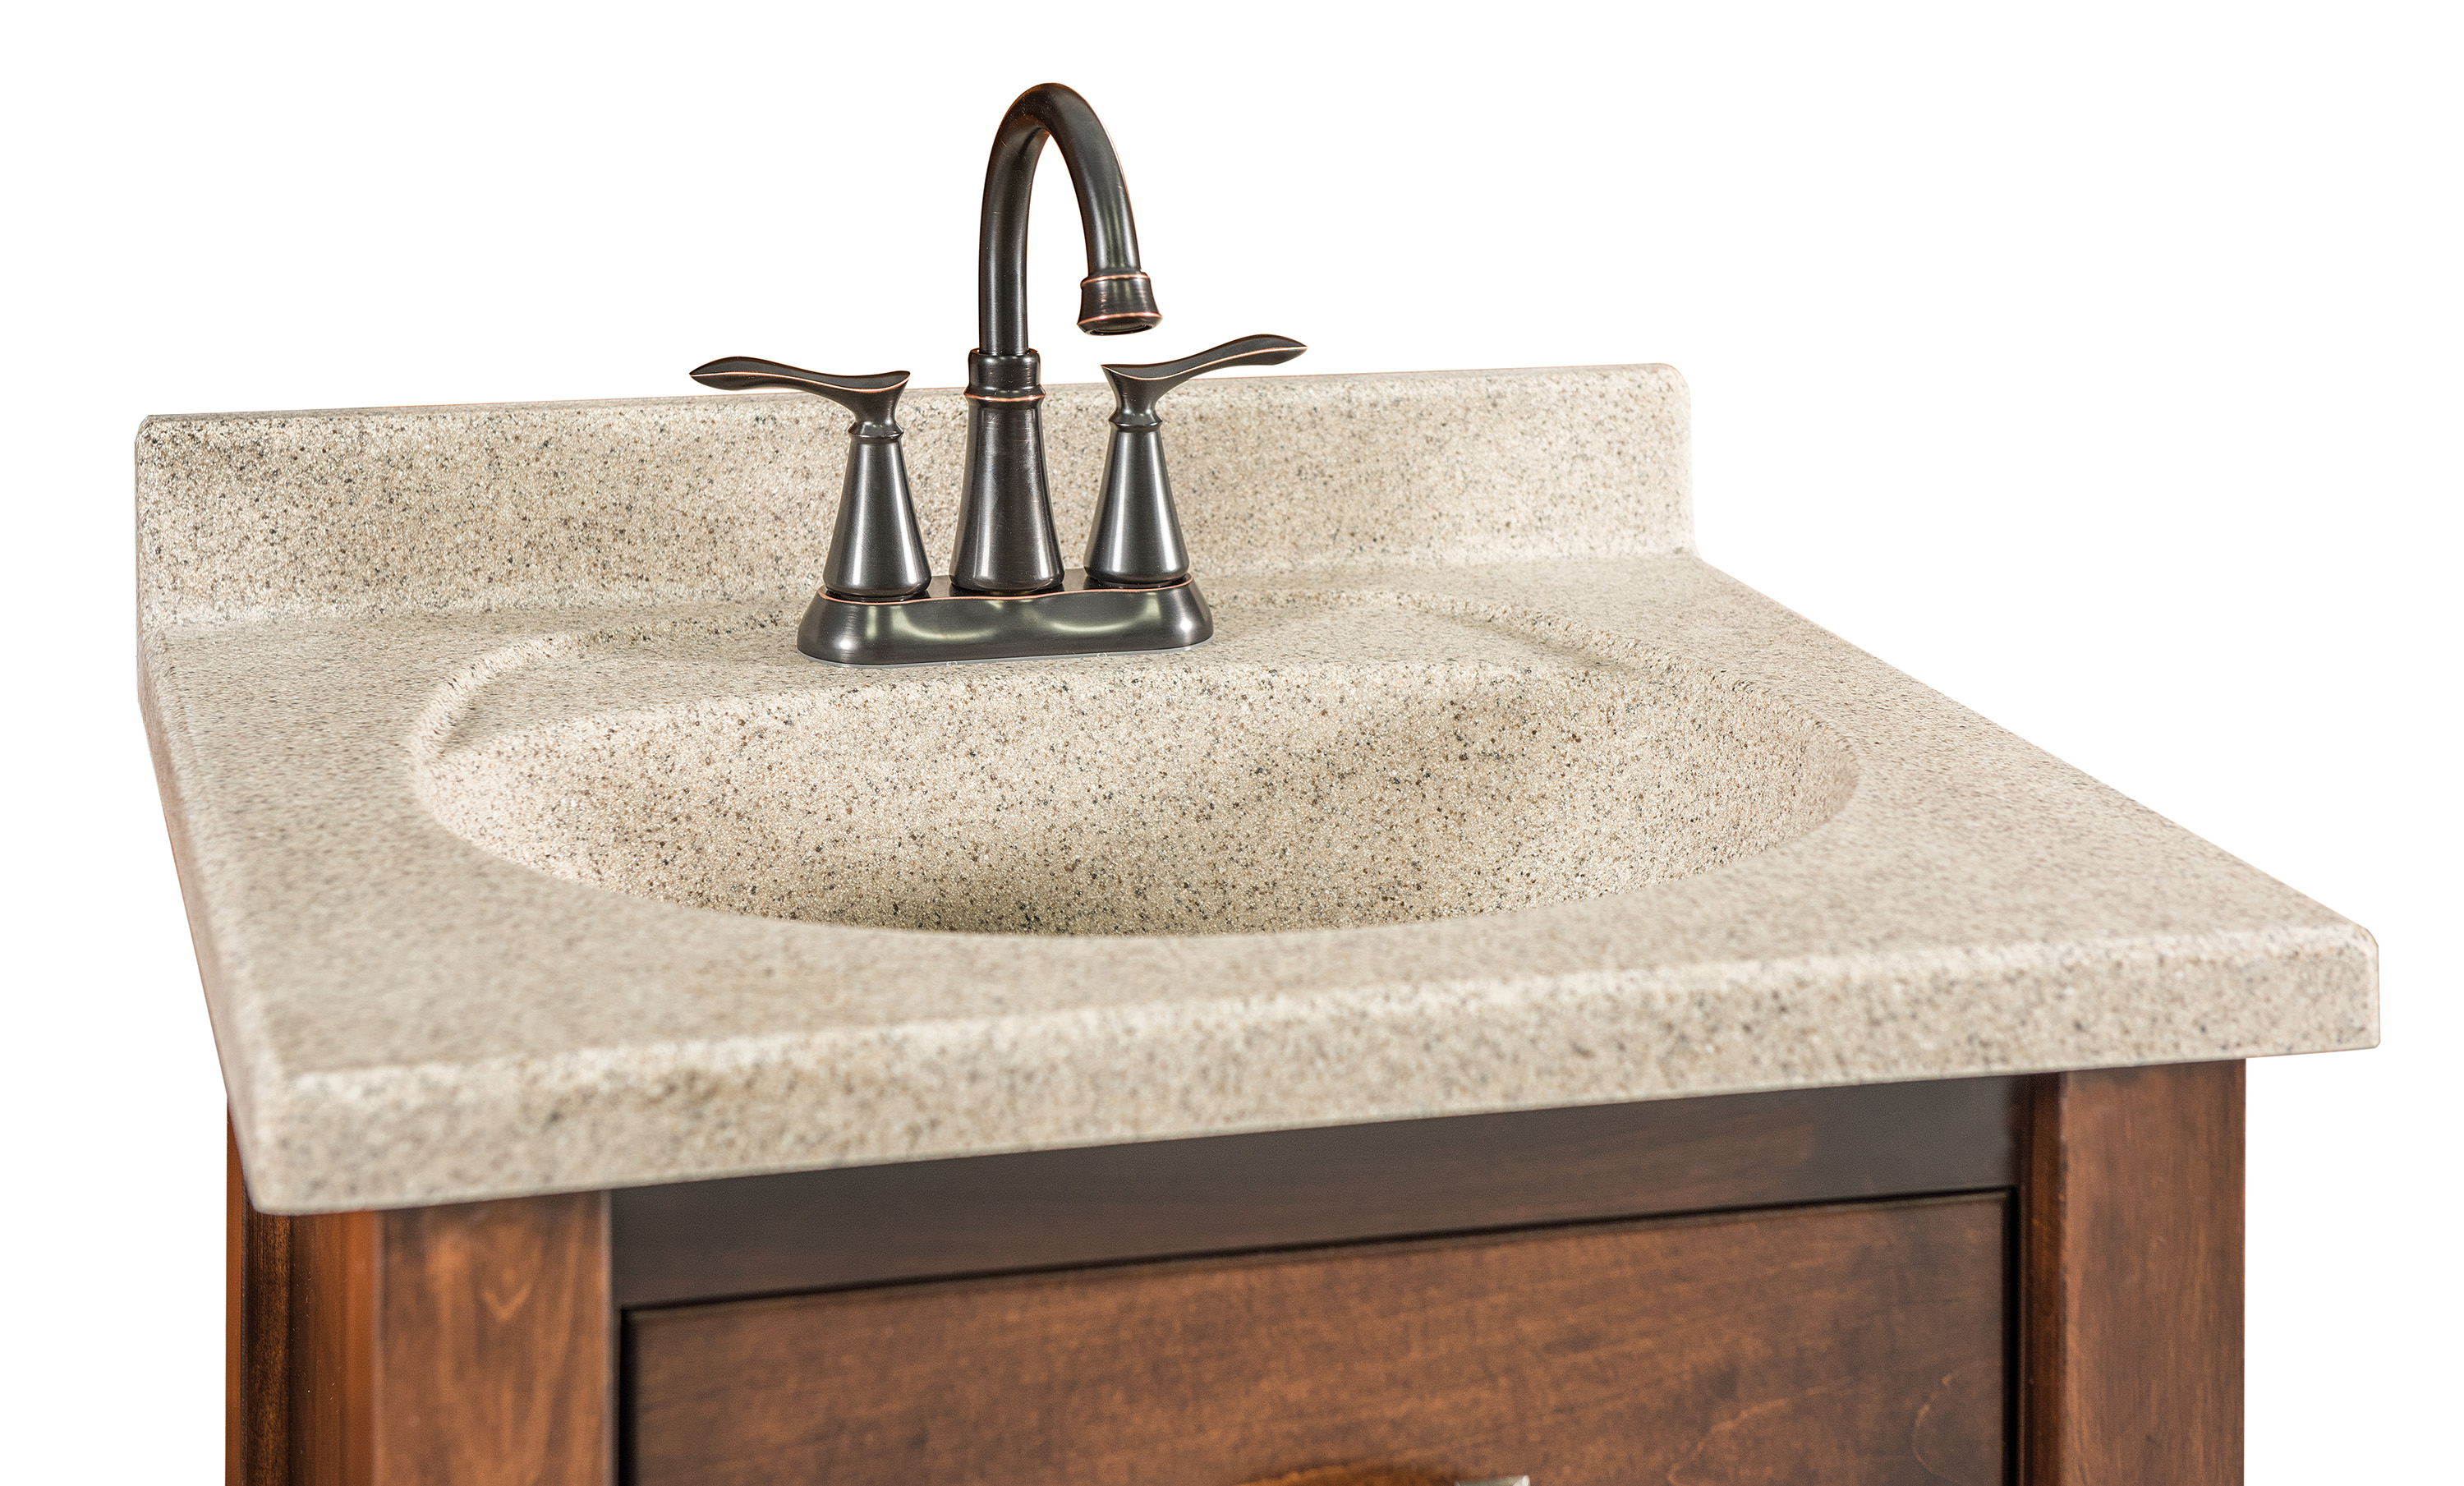 Cultured Marble for Sinks  Custom Cultured Marble for